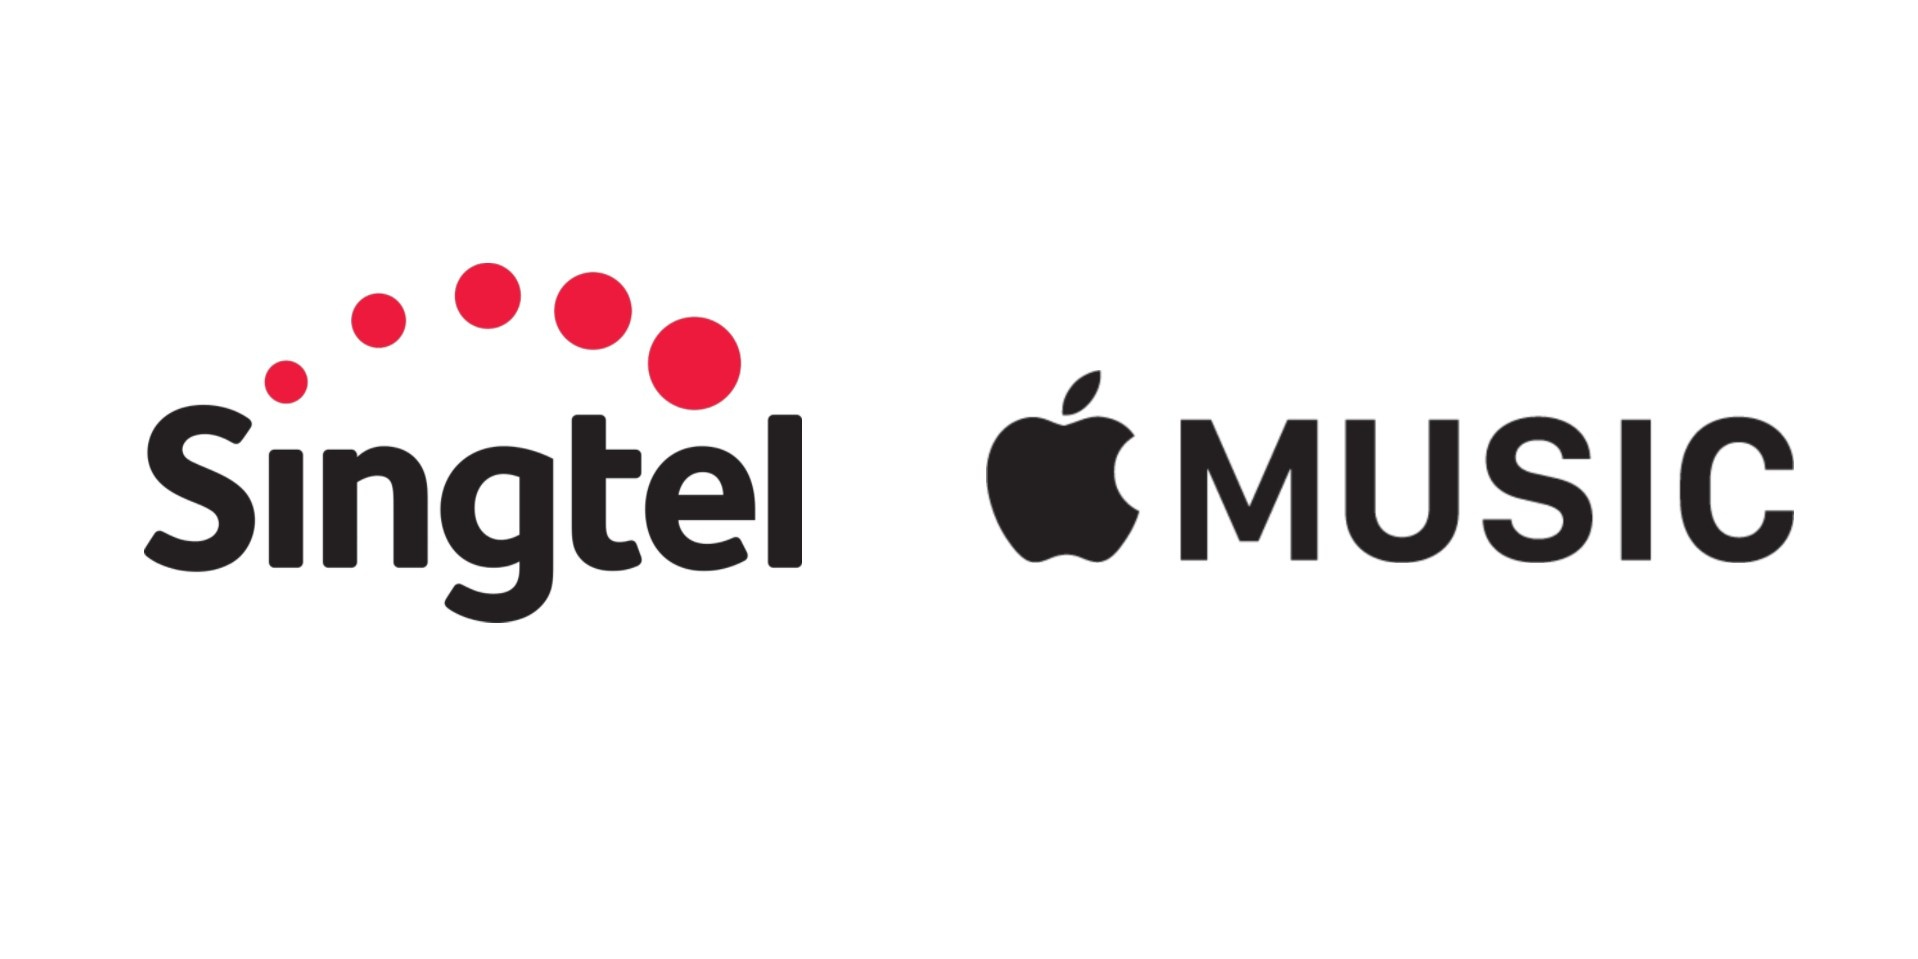 Are you a Singtel user? You can now stream Apple Music data-free for $9.98 a month